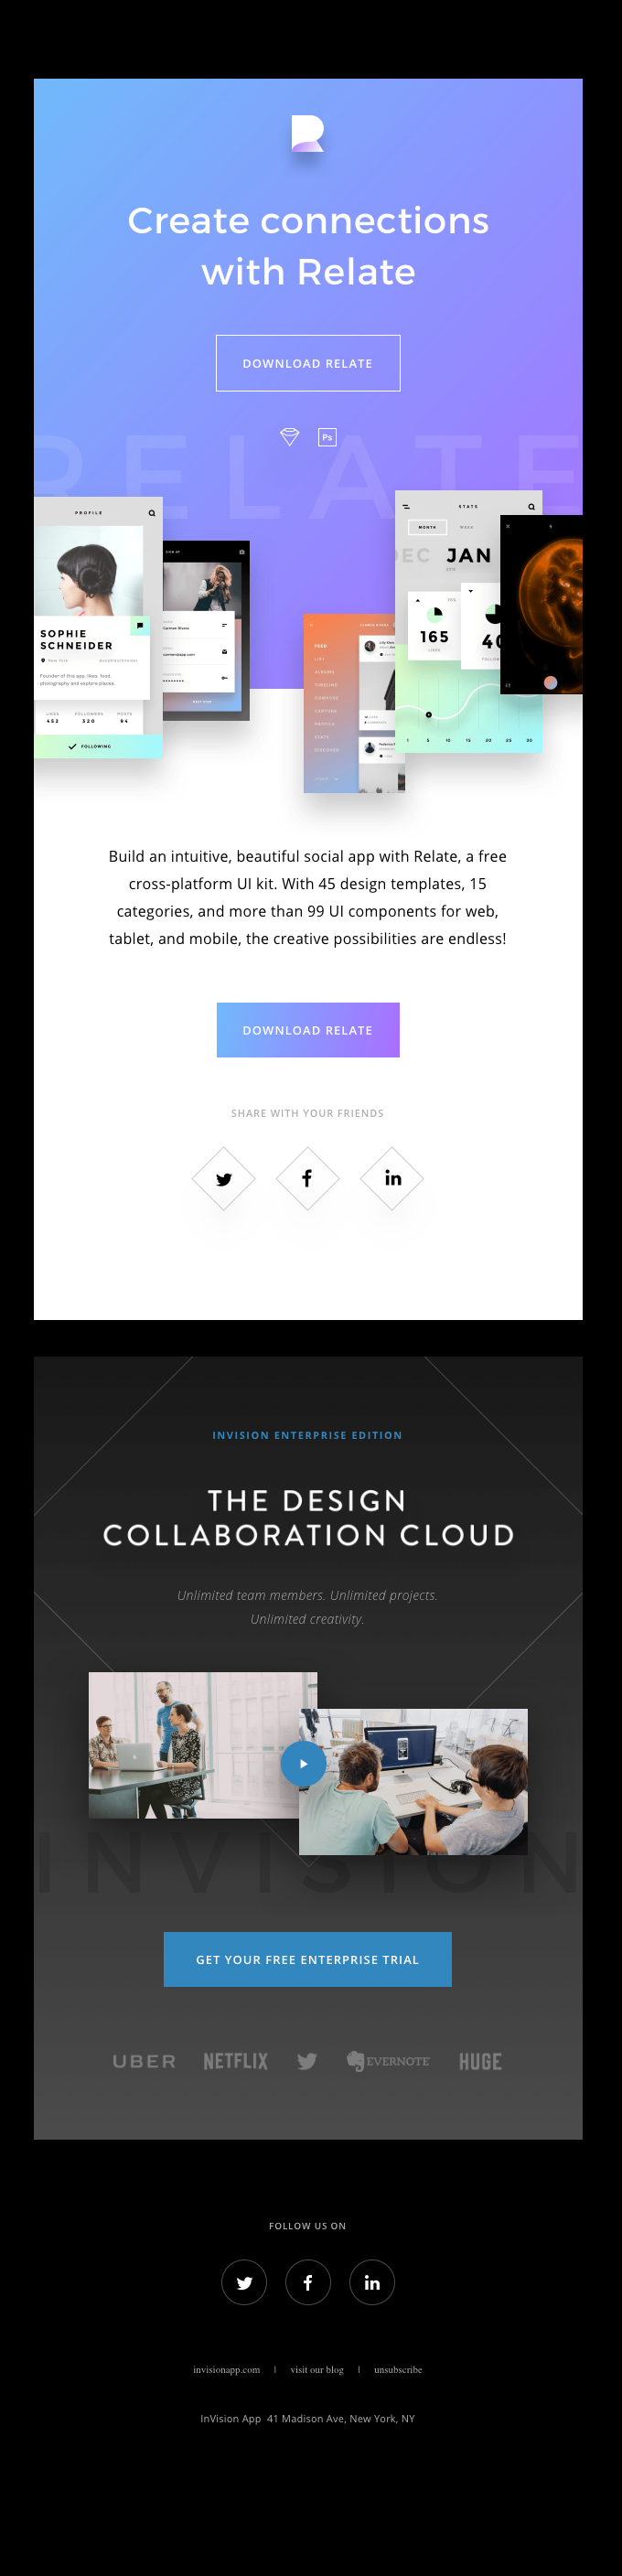 Download Relate, a free UI kit from InVision